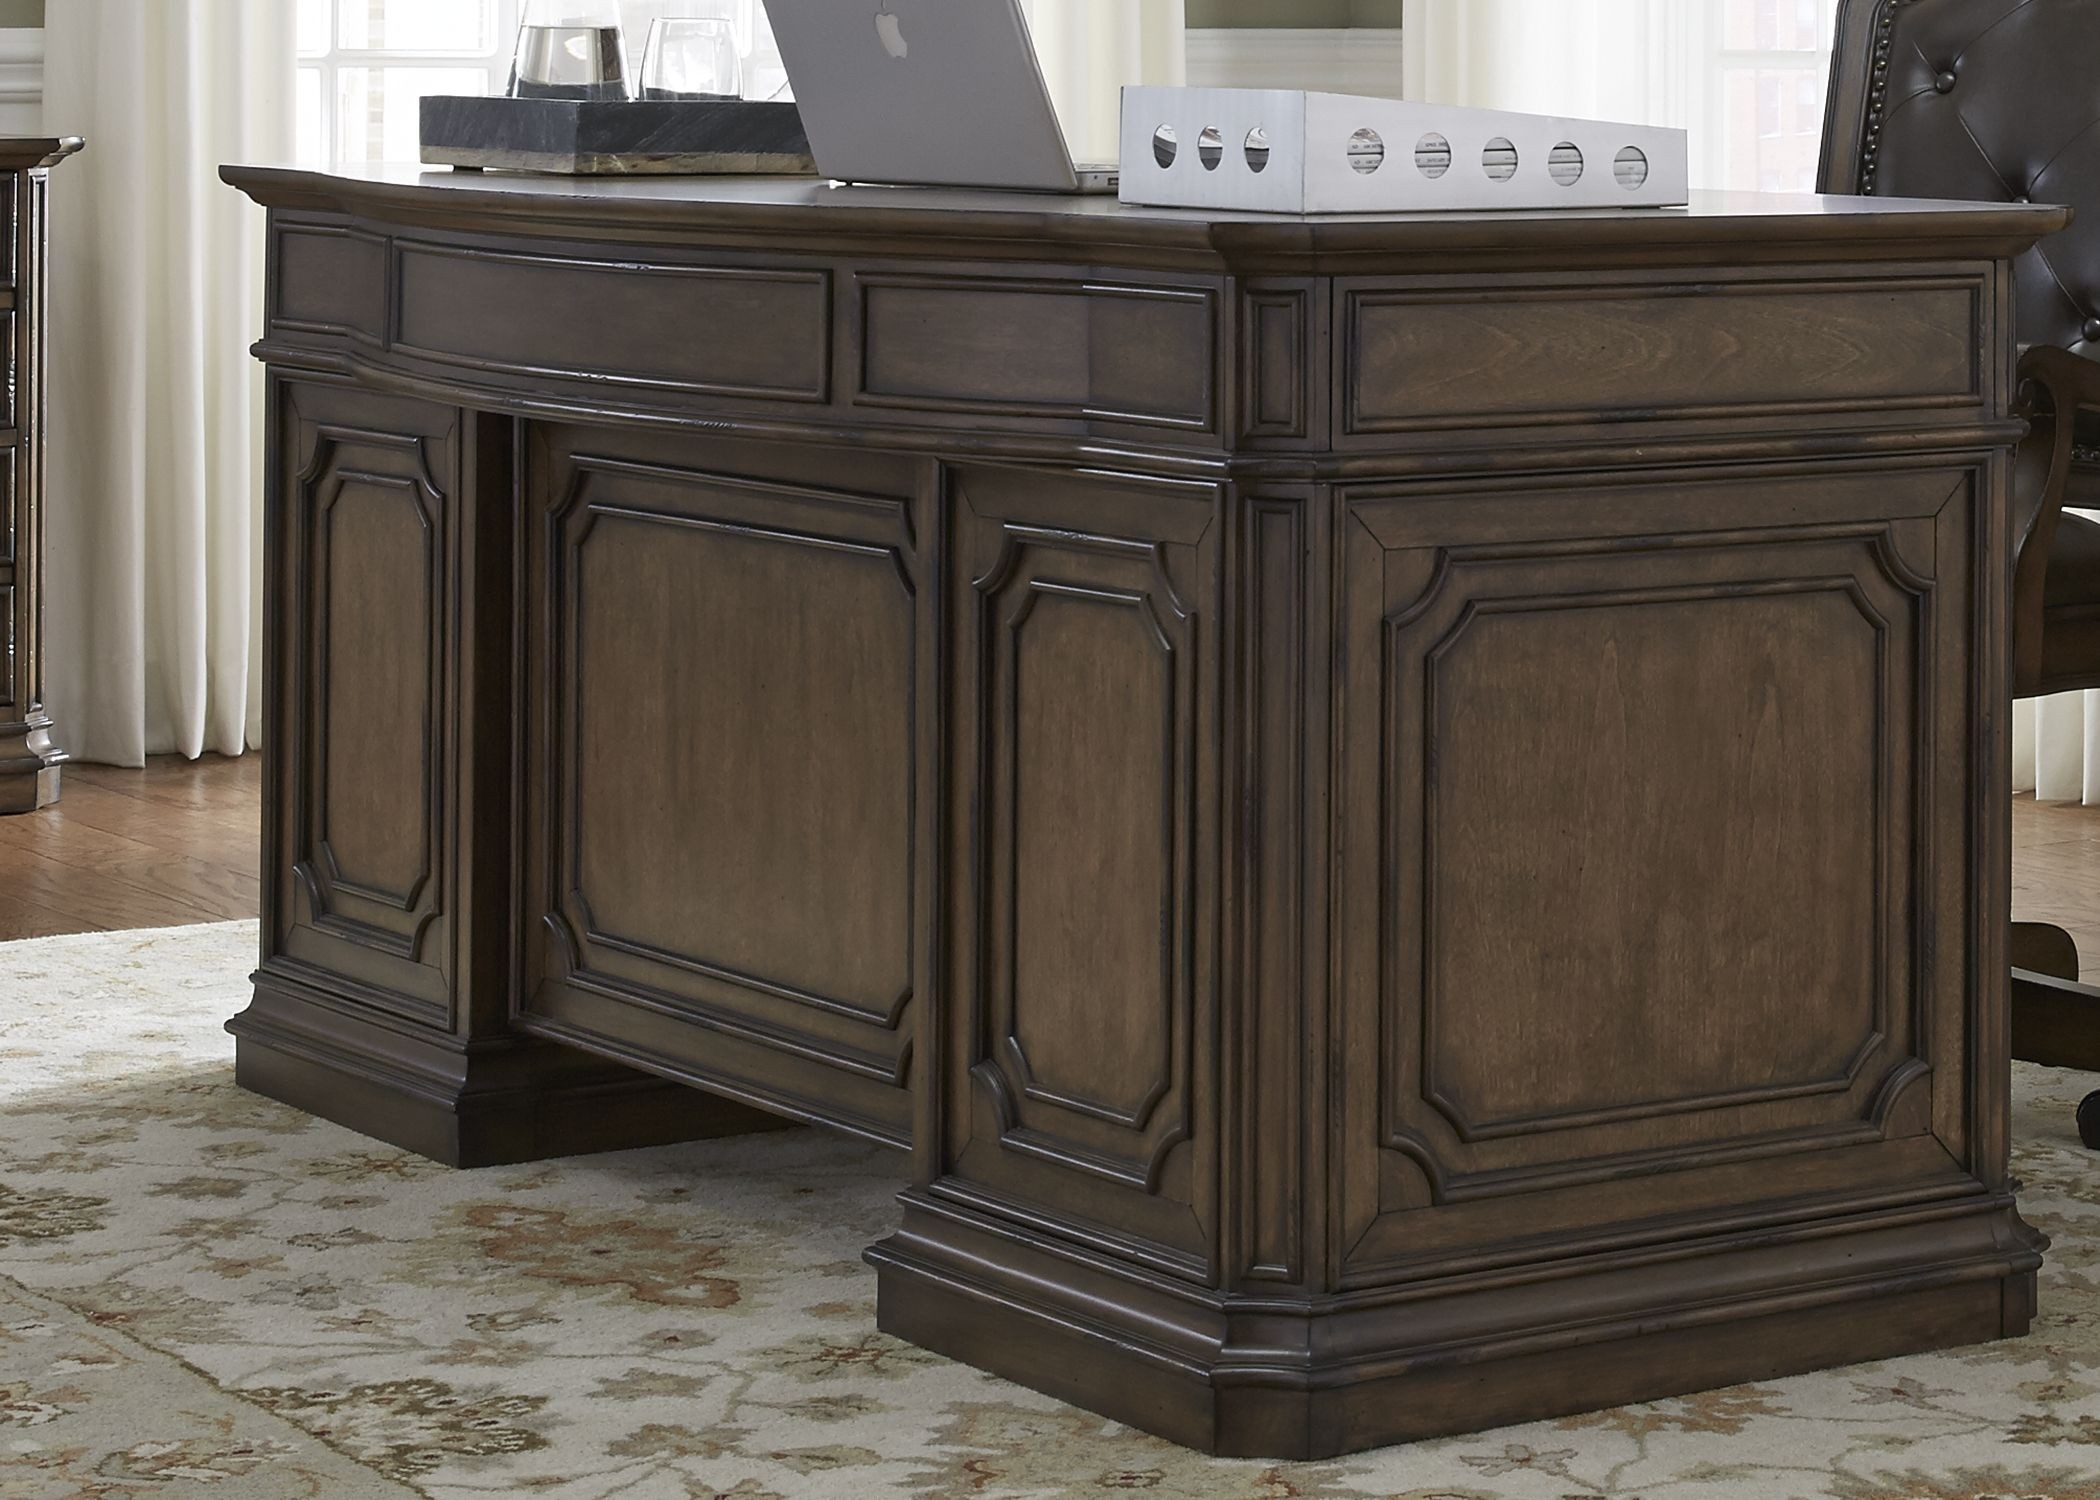 Amelia antique toffee jr executive home office set from - Home executive office furniture ...